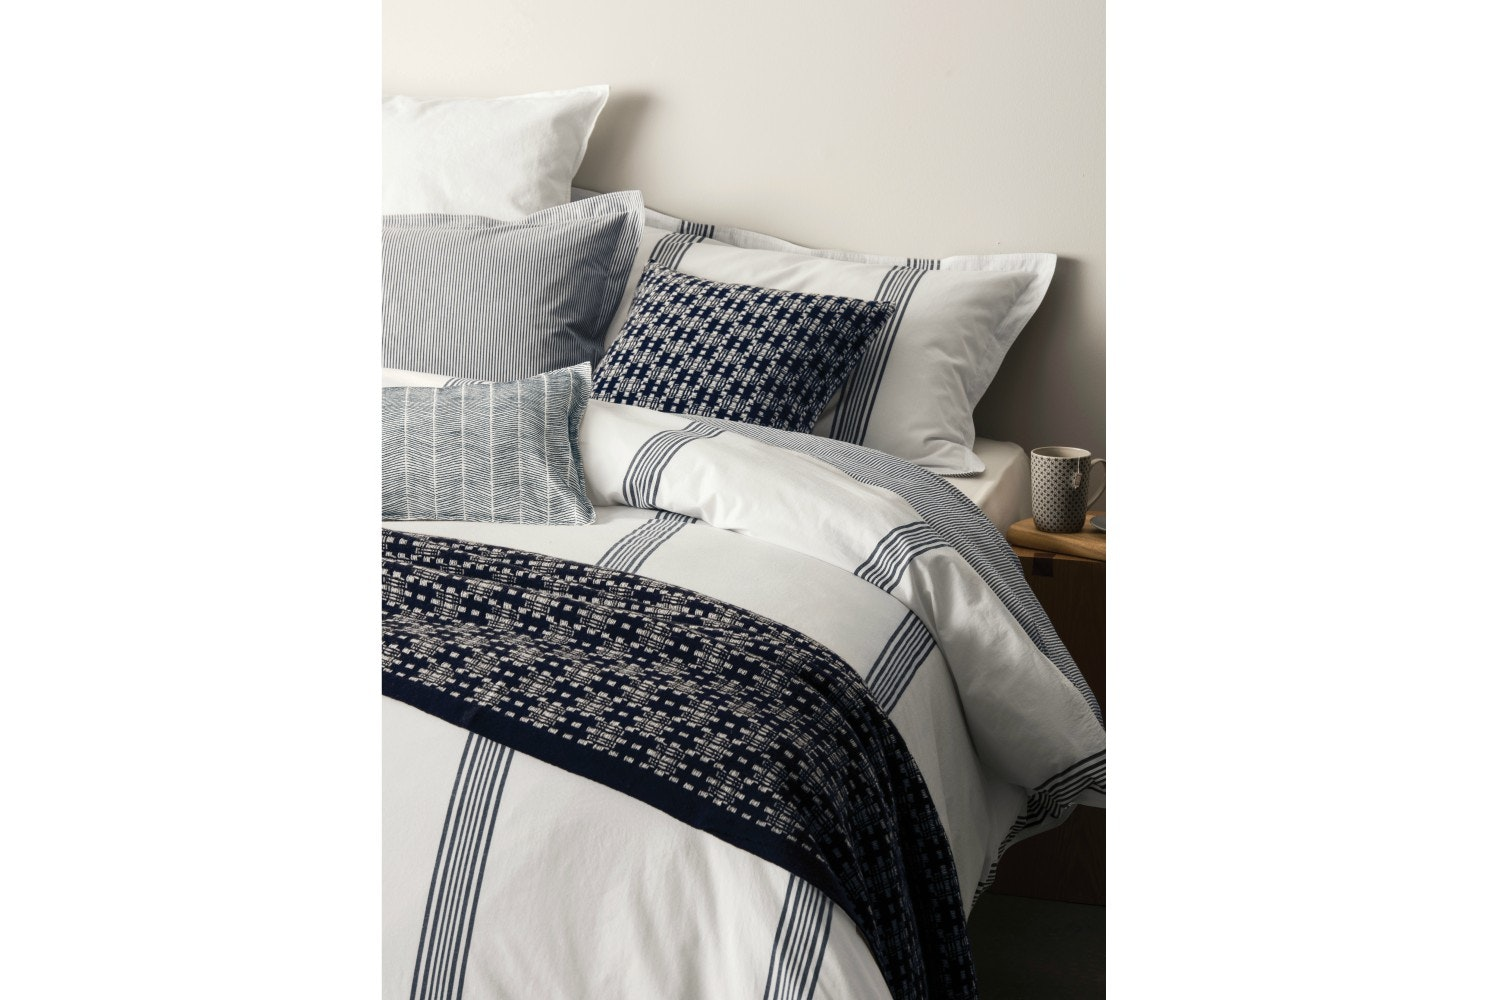 Murmur Broad Stripe Double Duvet Cover White & Indigo